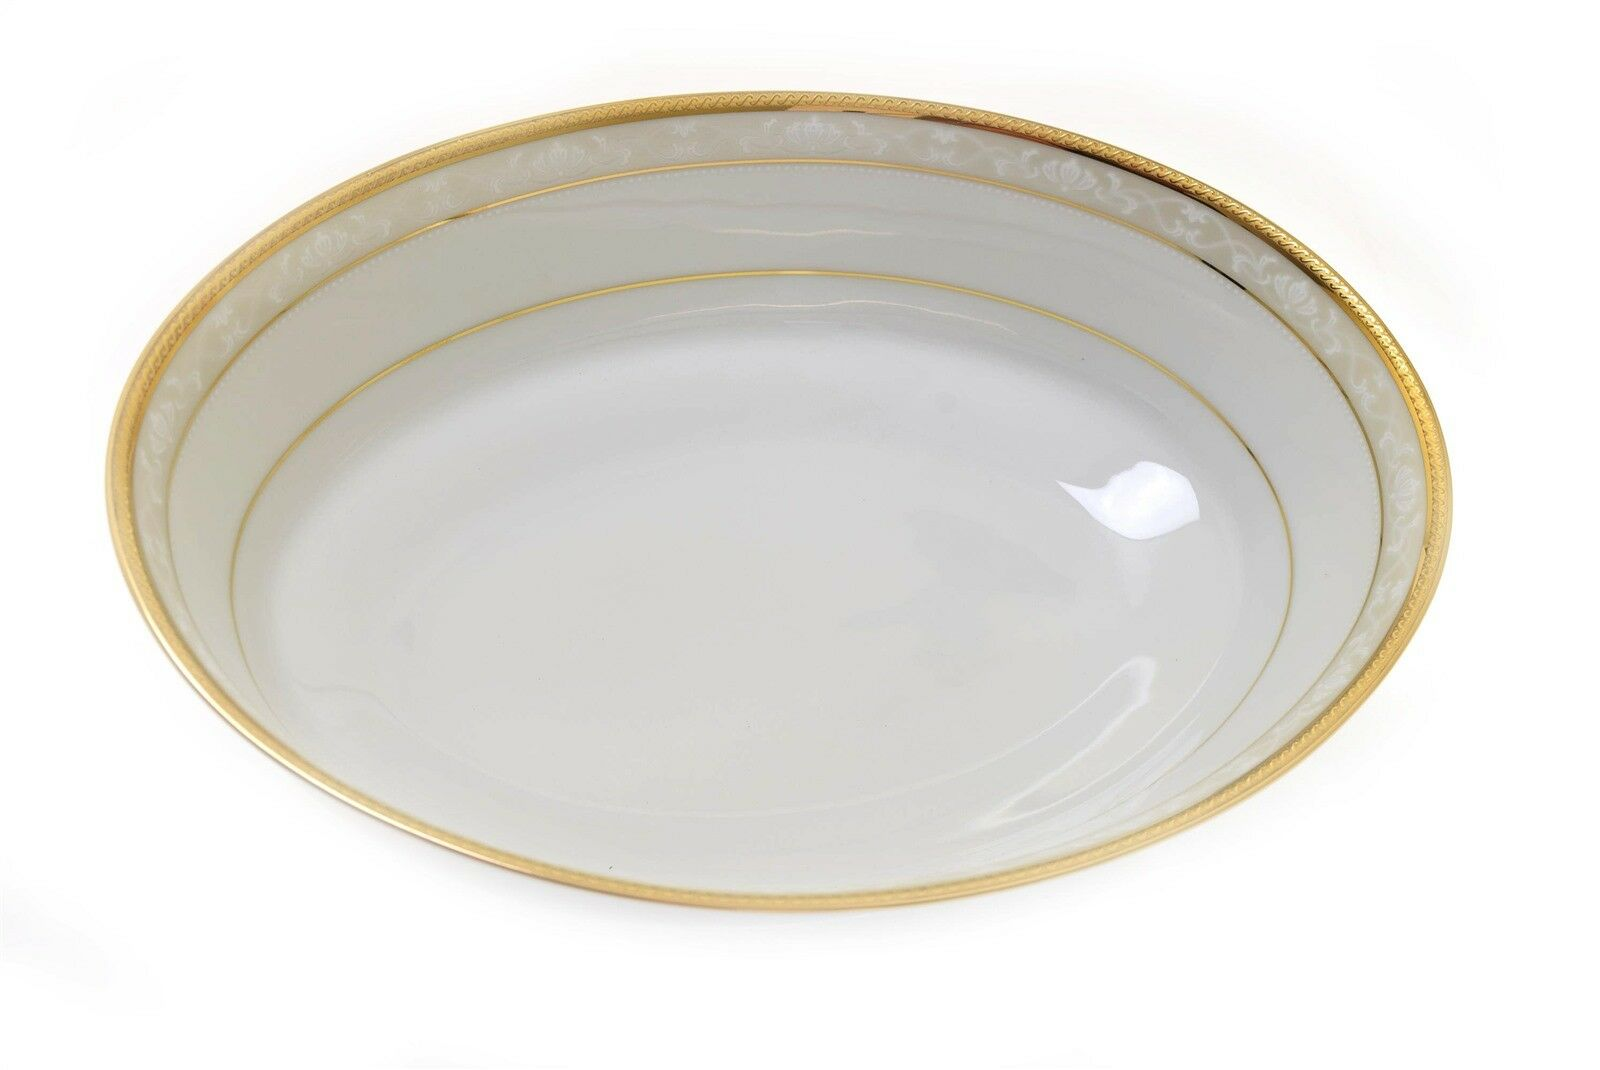 Noritake 4335 Hampshire Gold 9 5 8  x 7 1 4  Oval Serving Bowl - New